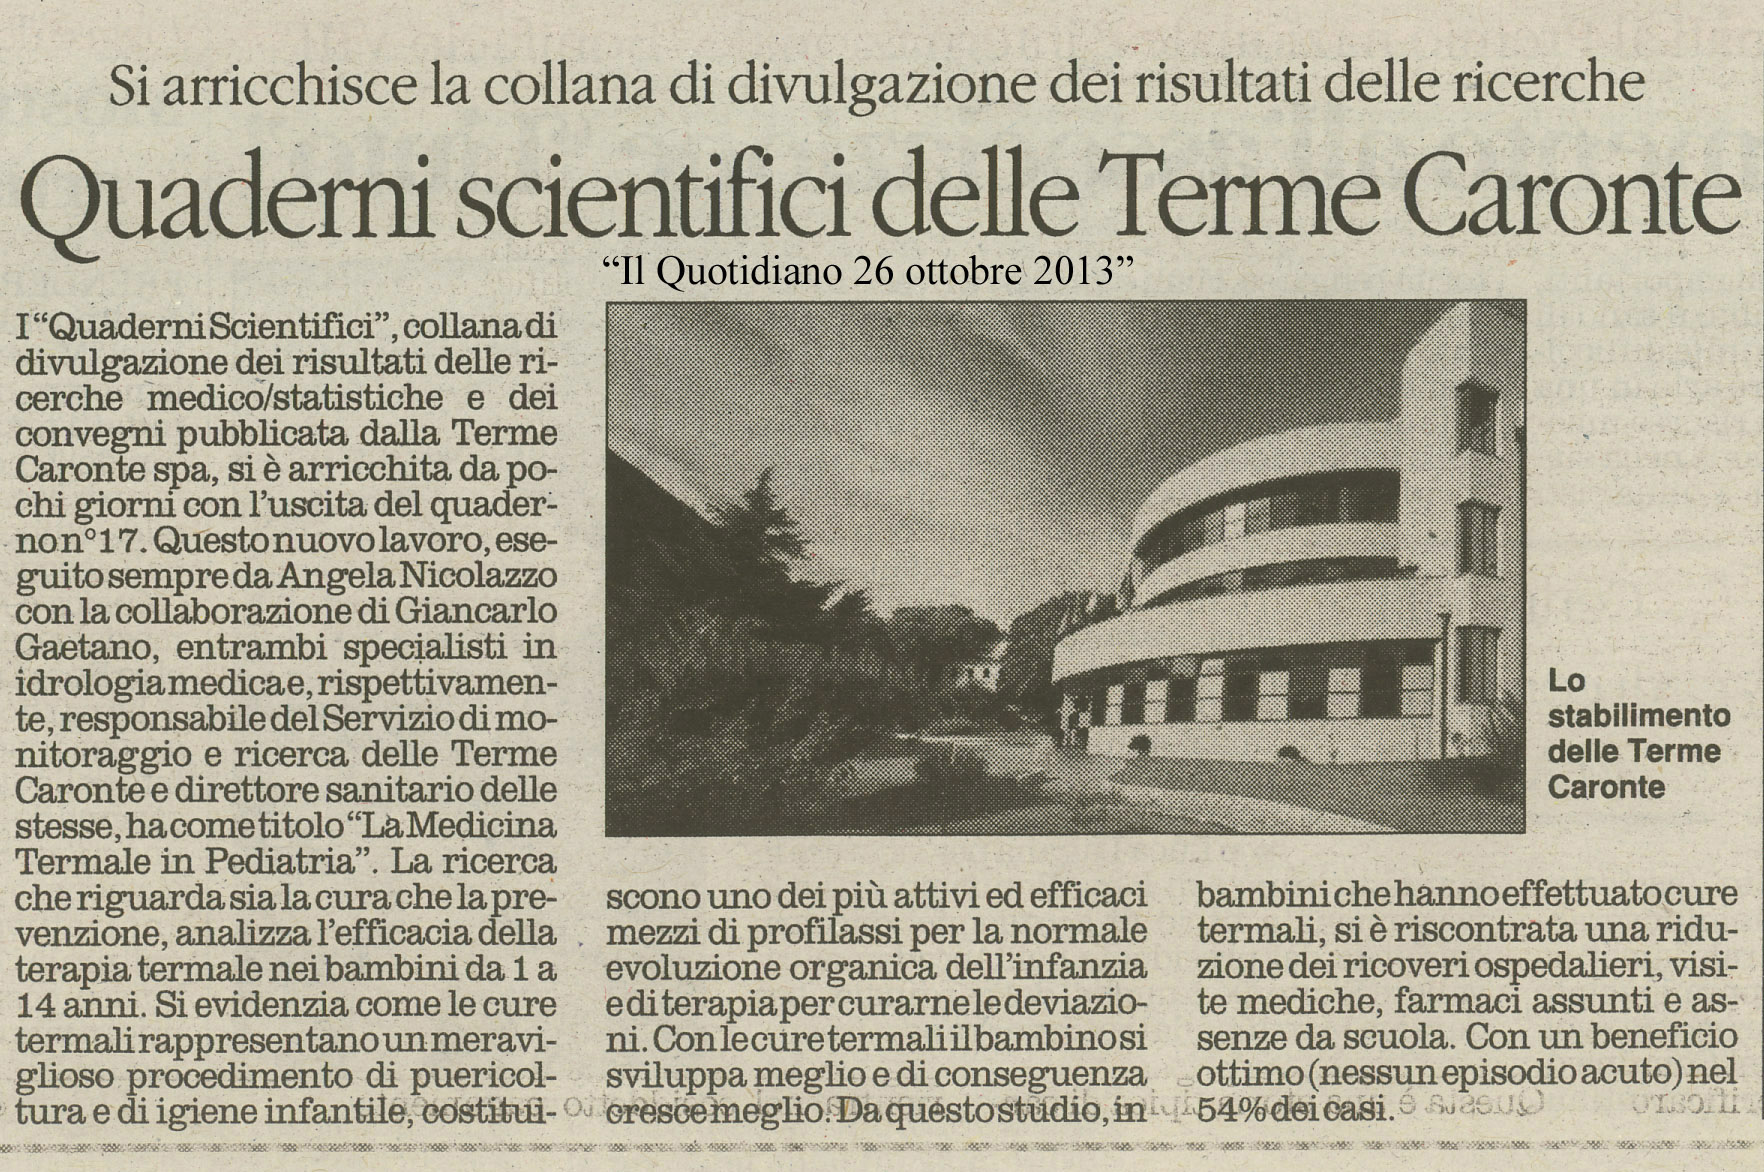 Il Quotidiano 26.X.013 (1)